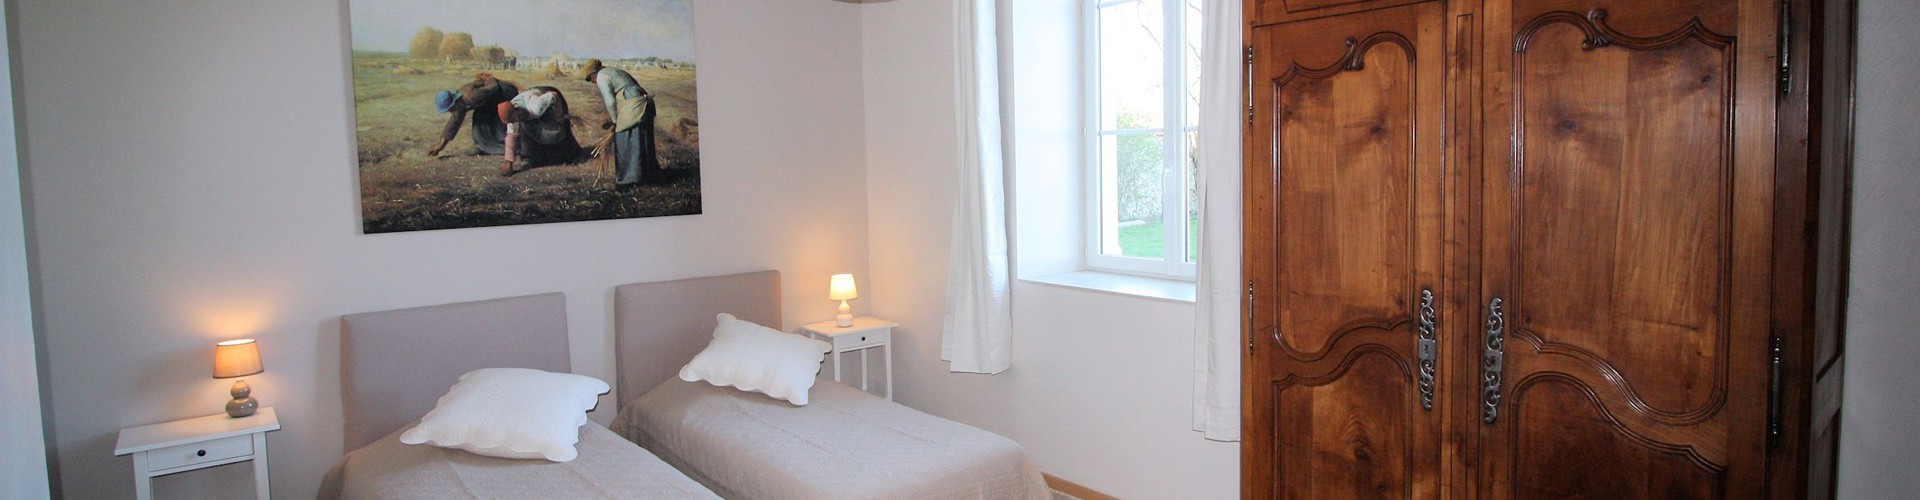 Ferme d'Orsonville - Living Cottage - Bedroom Millet